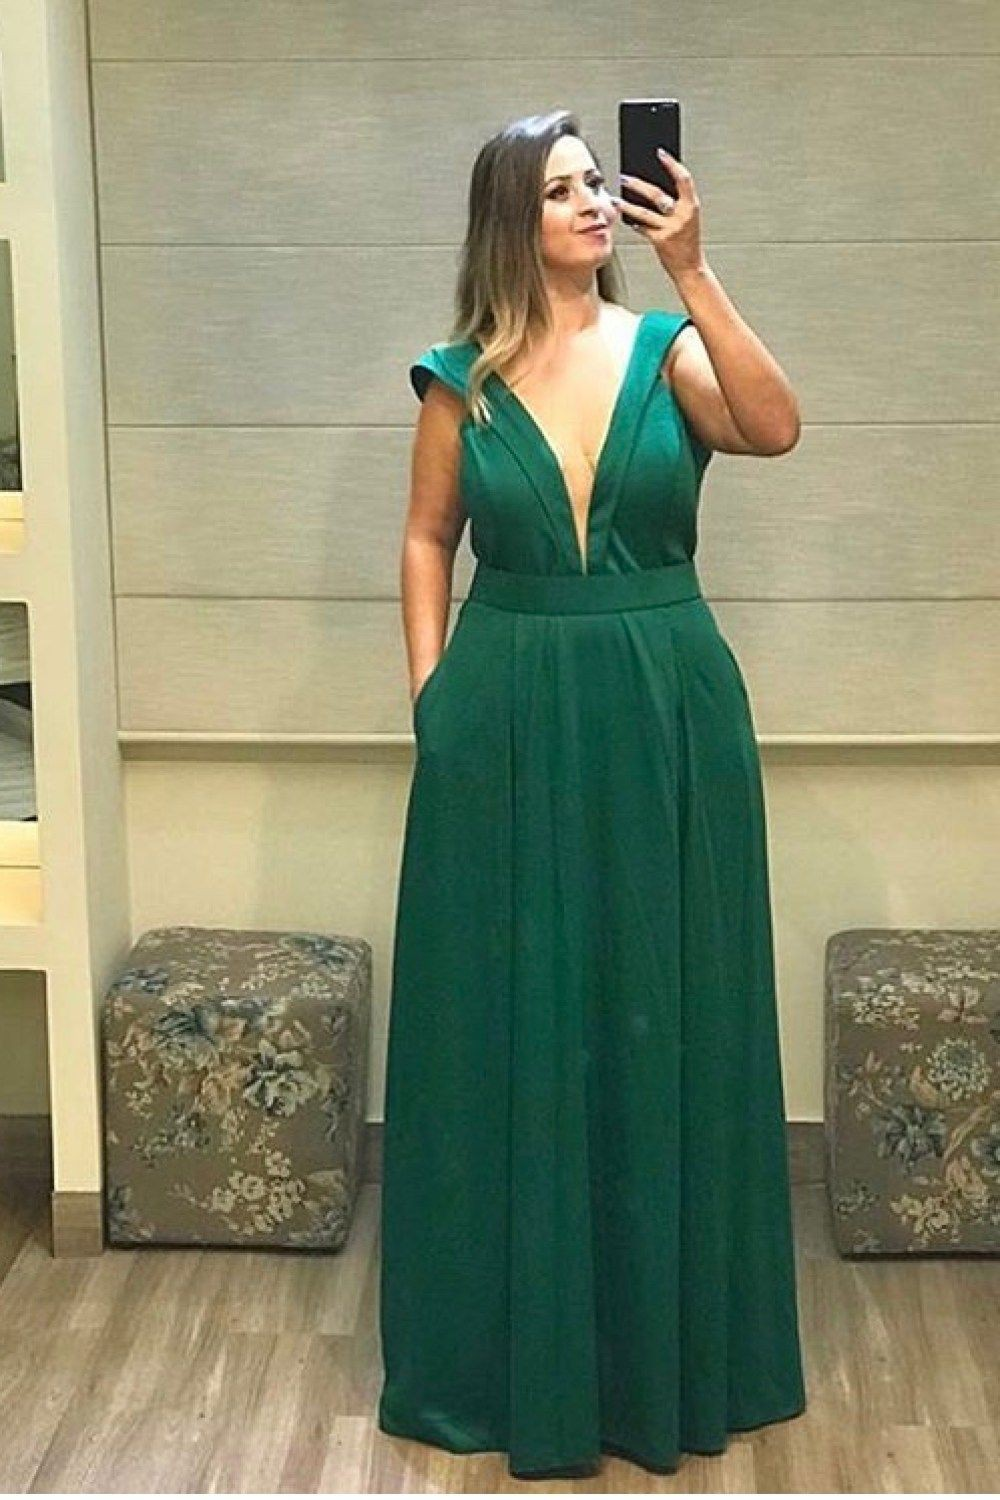 Turquoise and green outfit ideas with bridal party dress, cocktail dress, evening gown, formal w ...